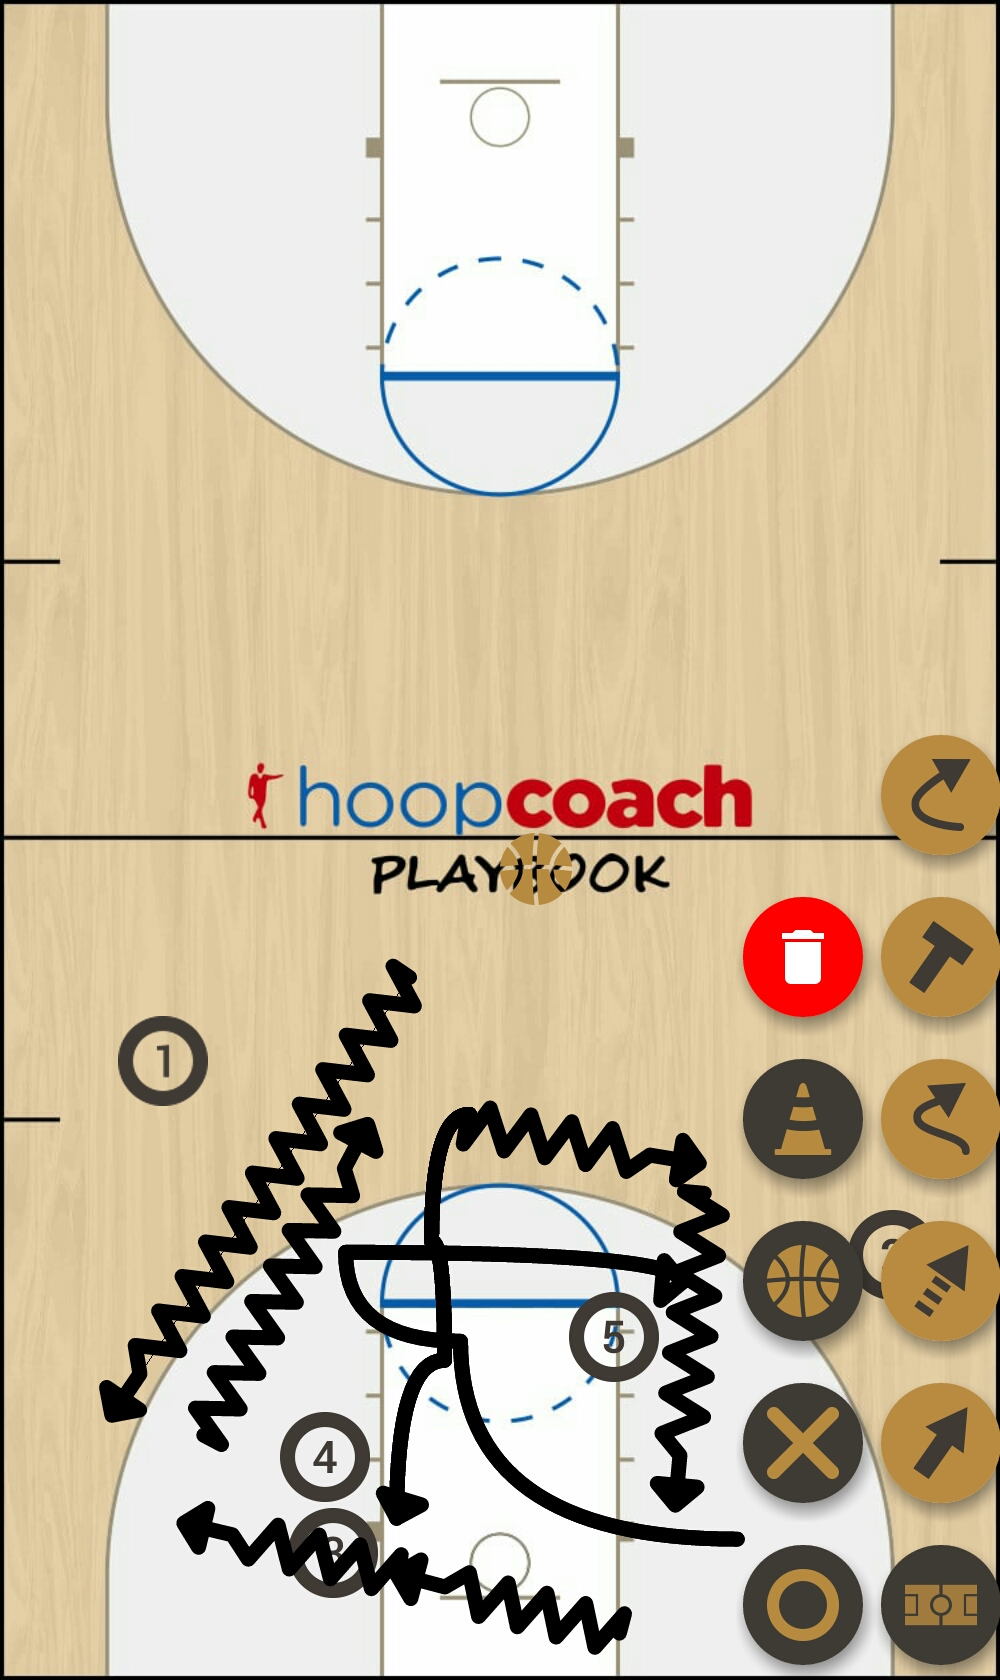 Basketball Play mejrem Man to Man Set